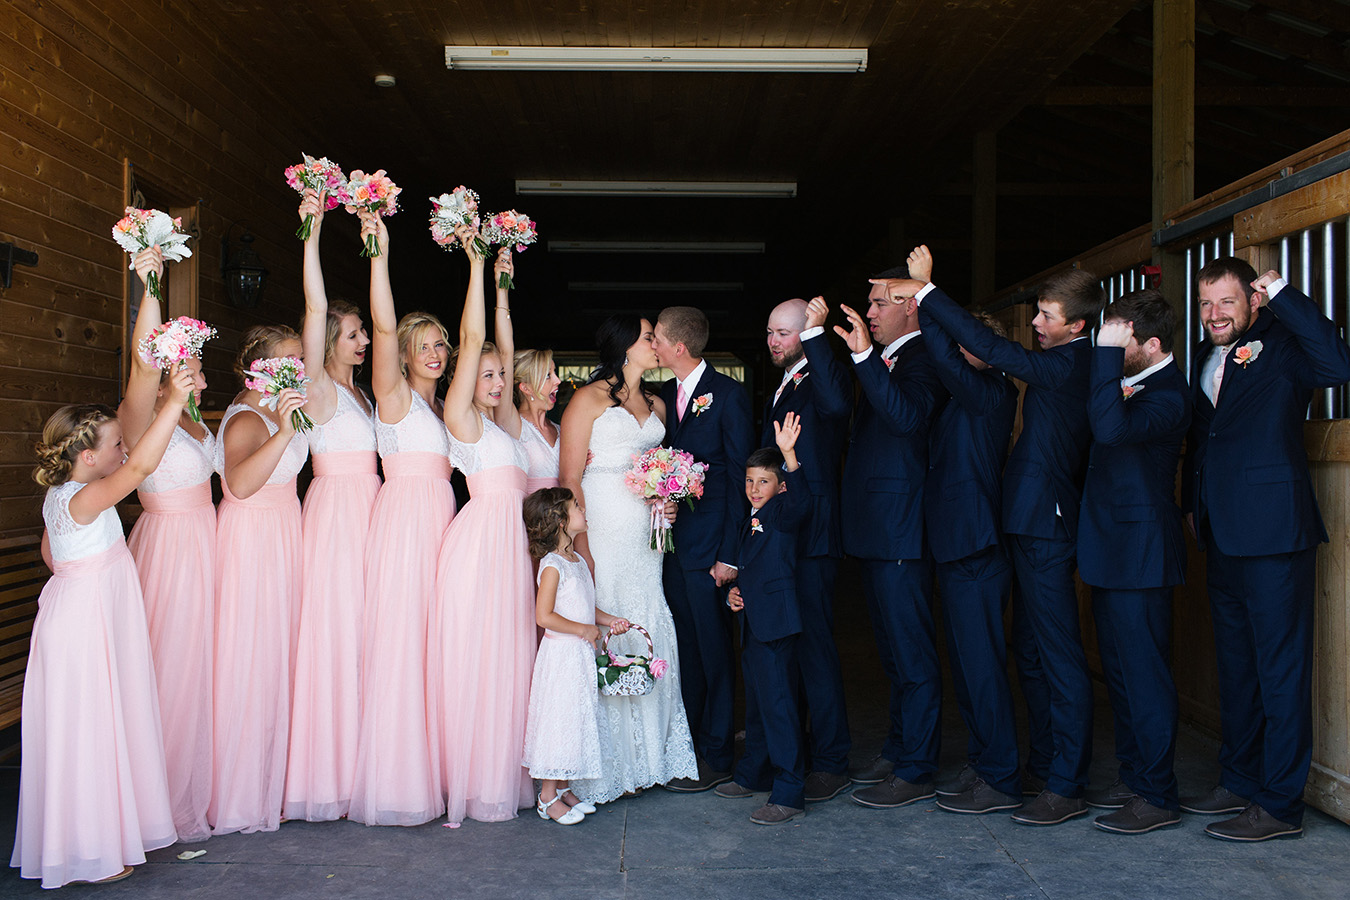 Bride, Montana, Mountains, Groom, Bridal Party